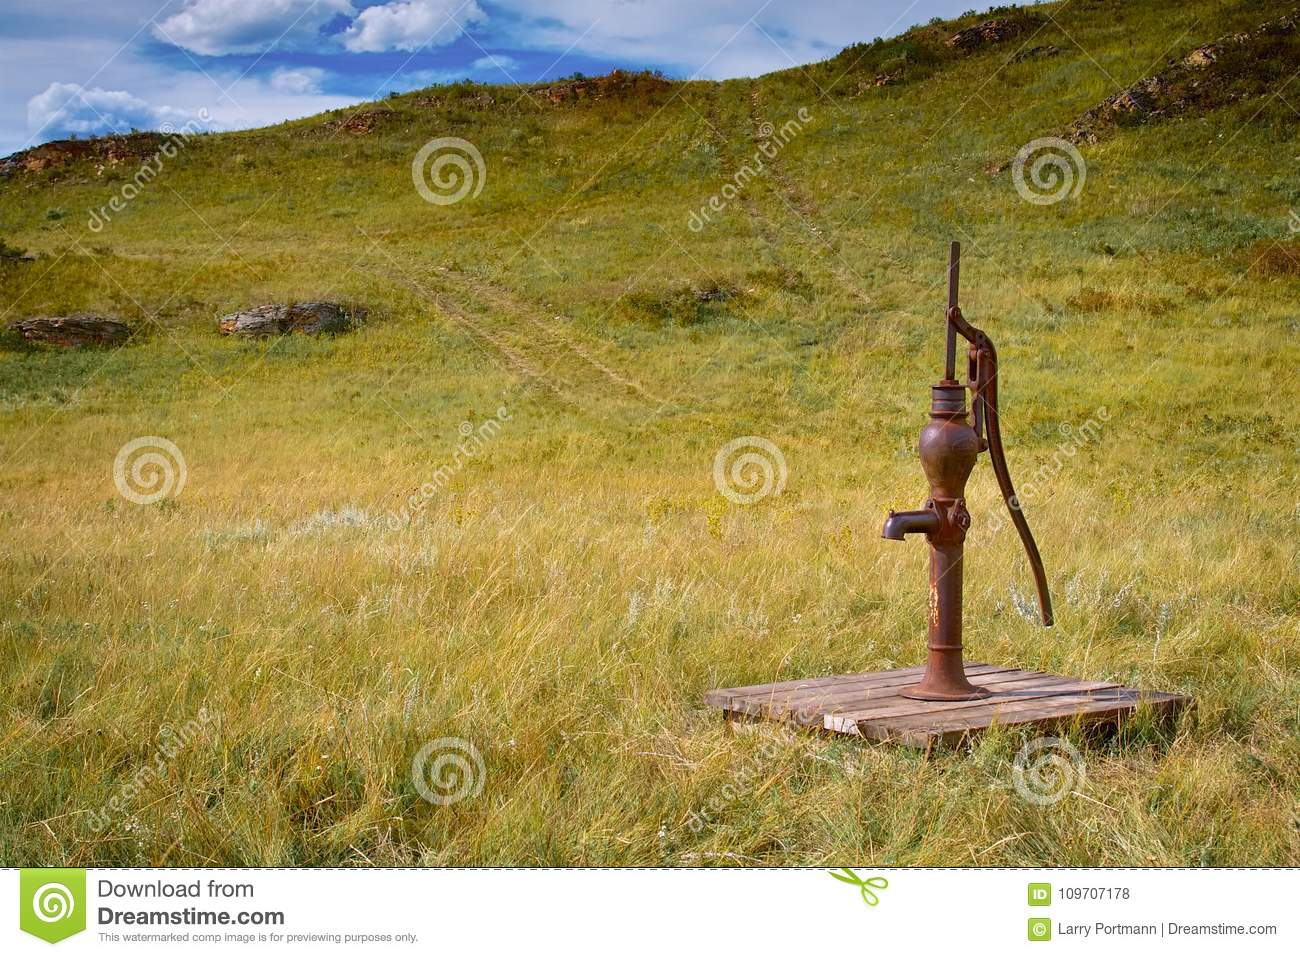 Old Fashioned Water Pump Out In A Field Stock Photo - Image of